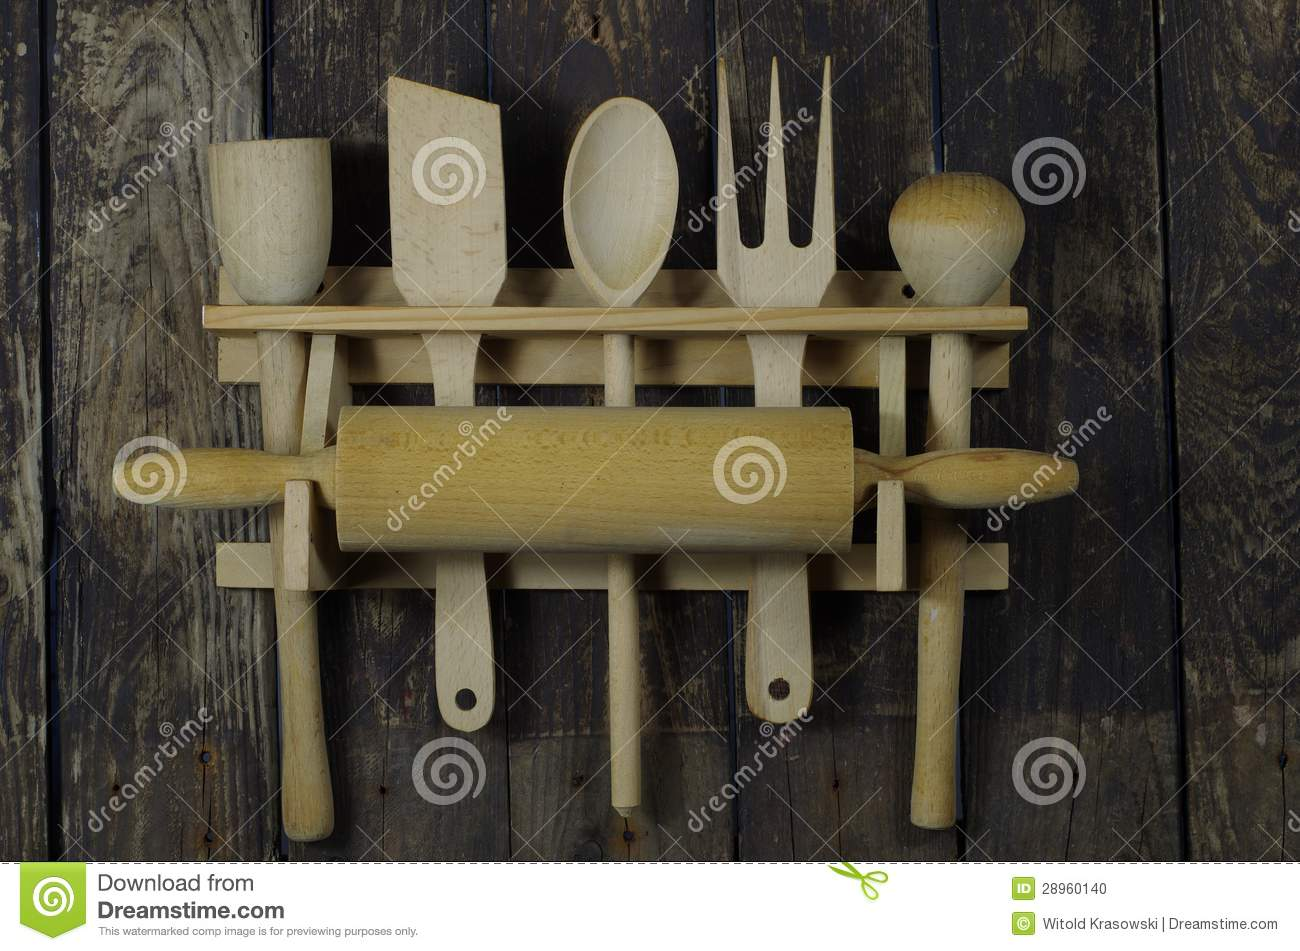 Wooden Kitchen Accessories Stock Photo - Image: 28960140